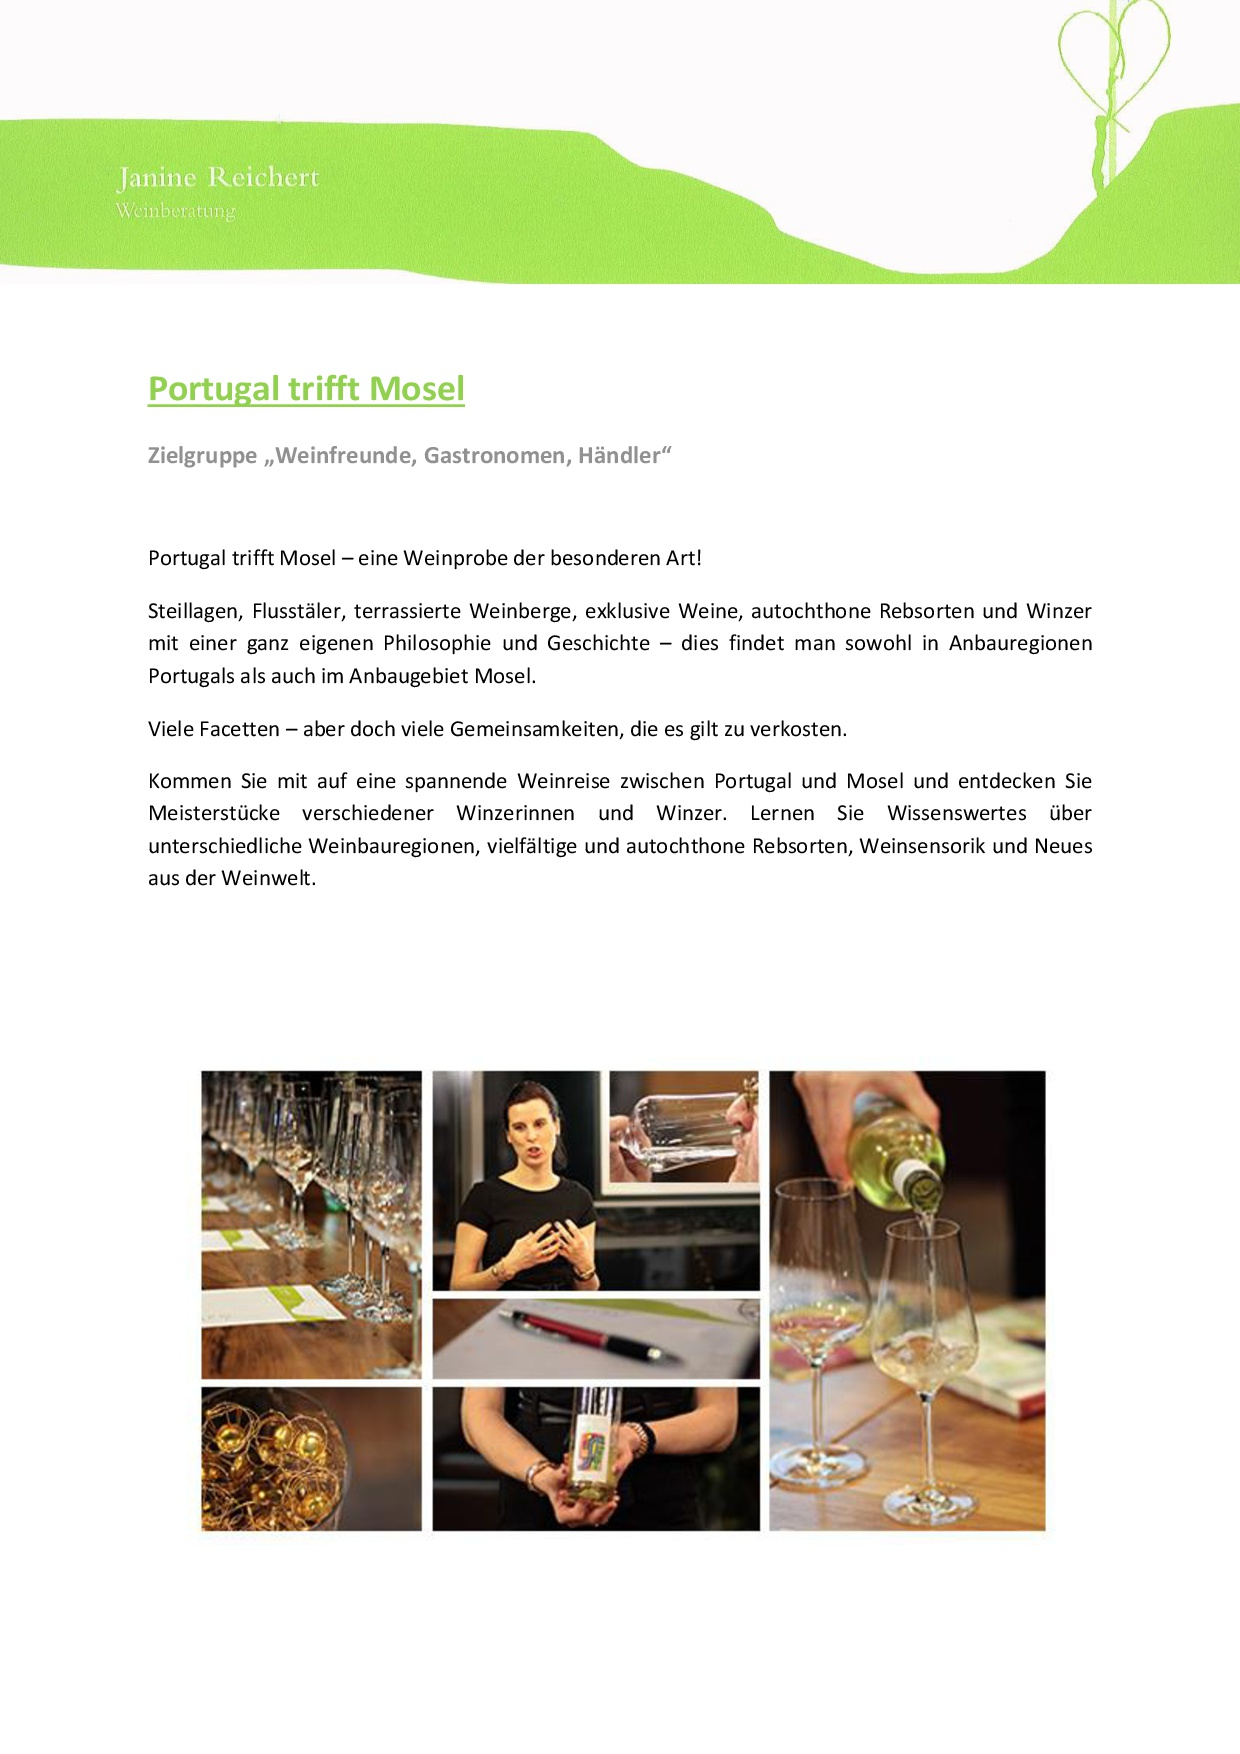 Portugal trifft Mosel